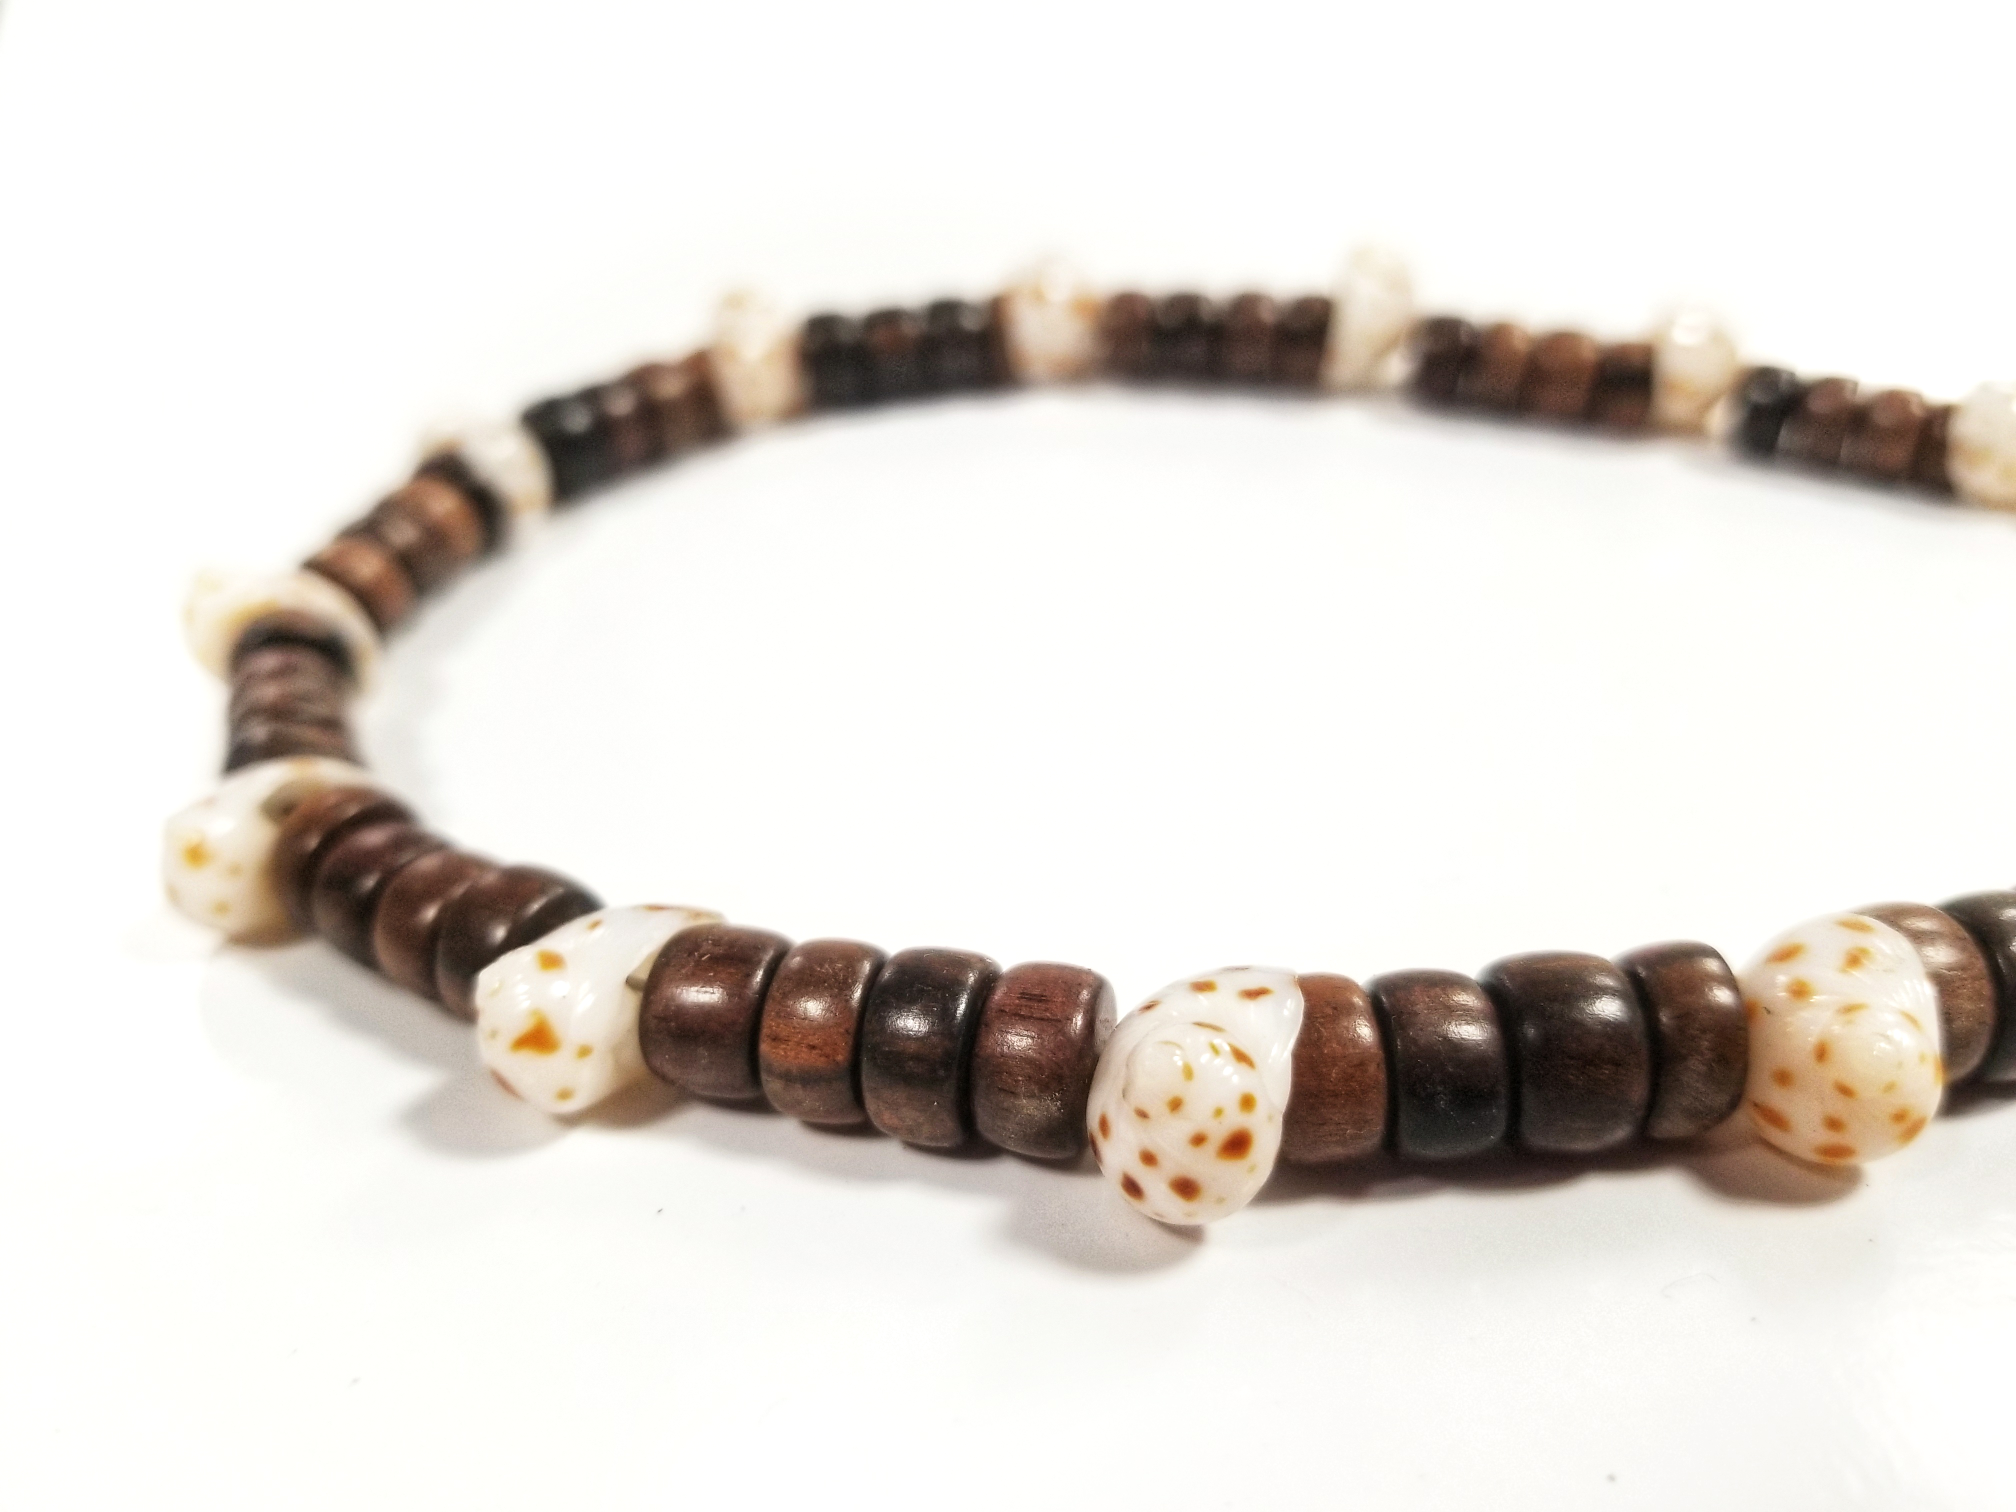 b7e174a12a32e 5 New Men's Necklace and Bracelet Styles Coming This Week ...